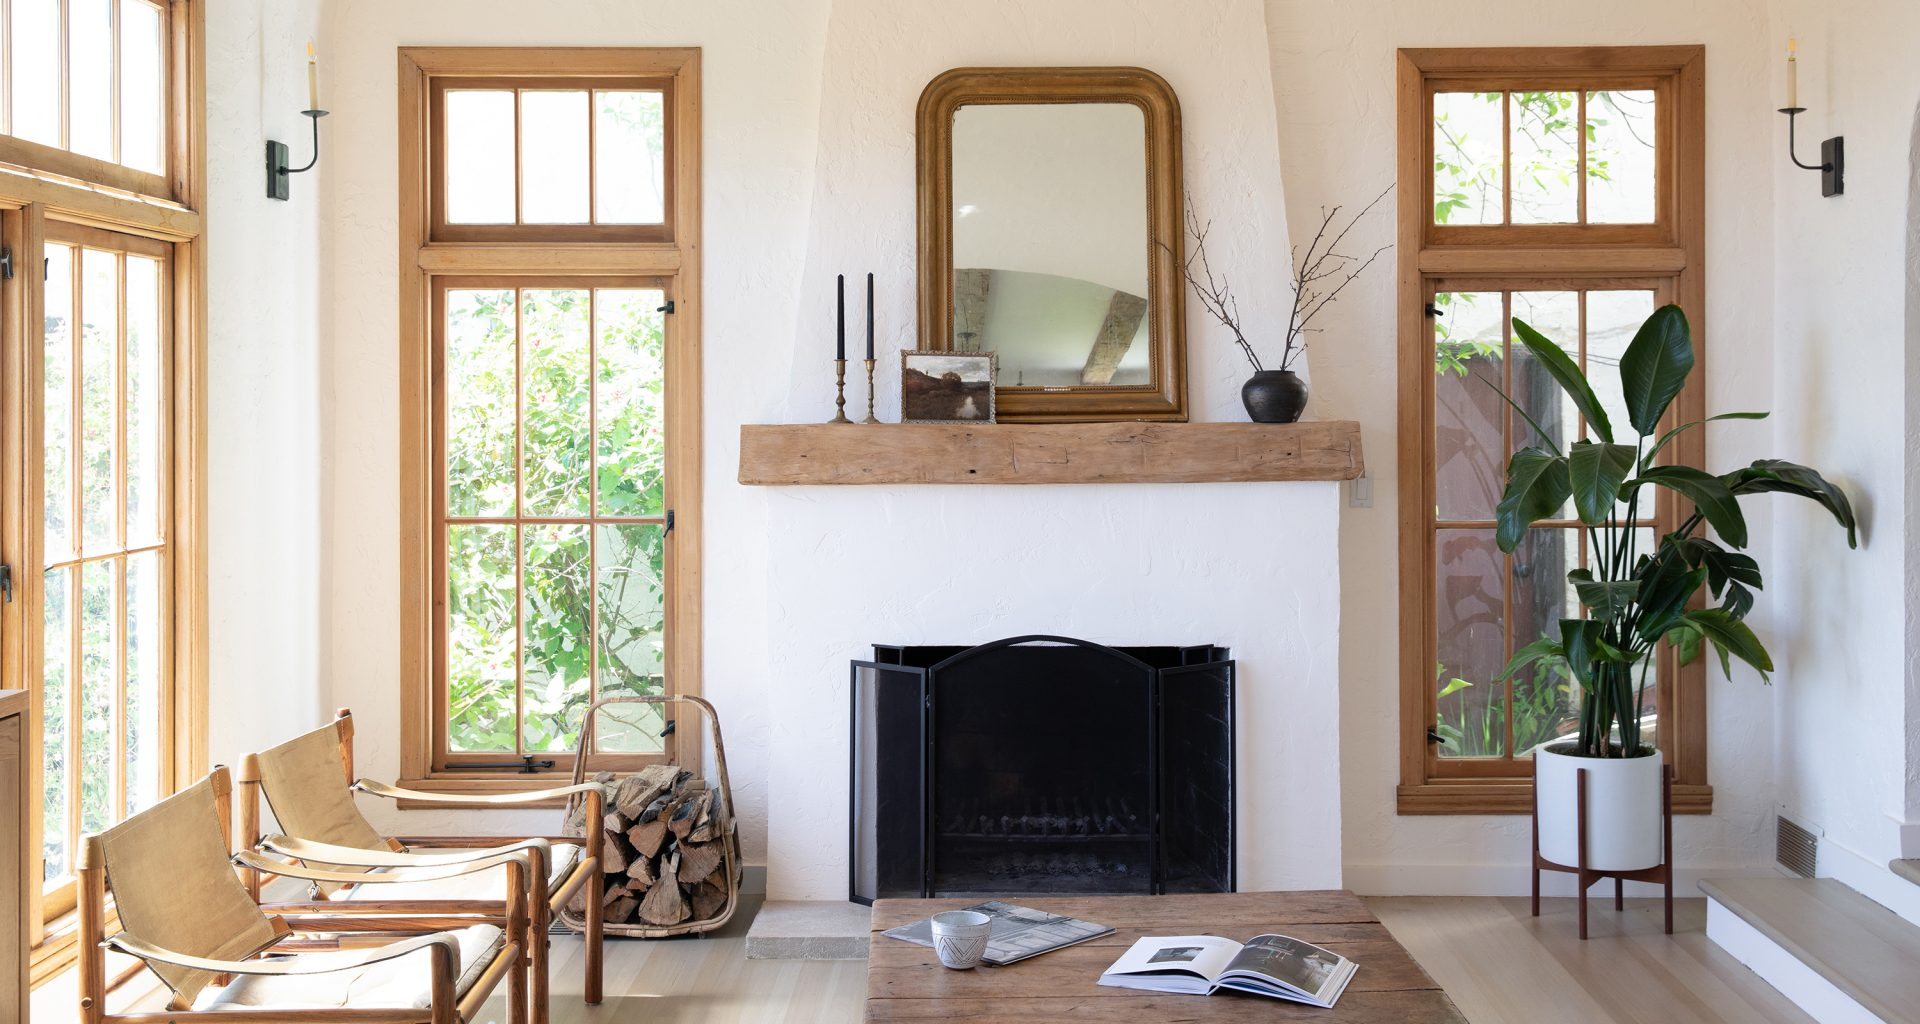 This Berkeley Hills Home Will Transport You to the French Countryside